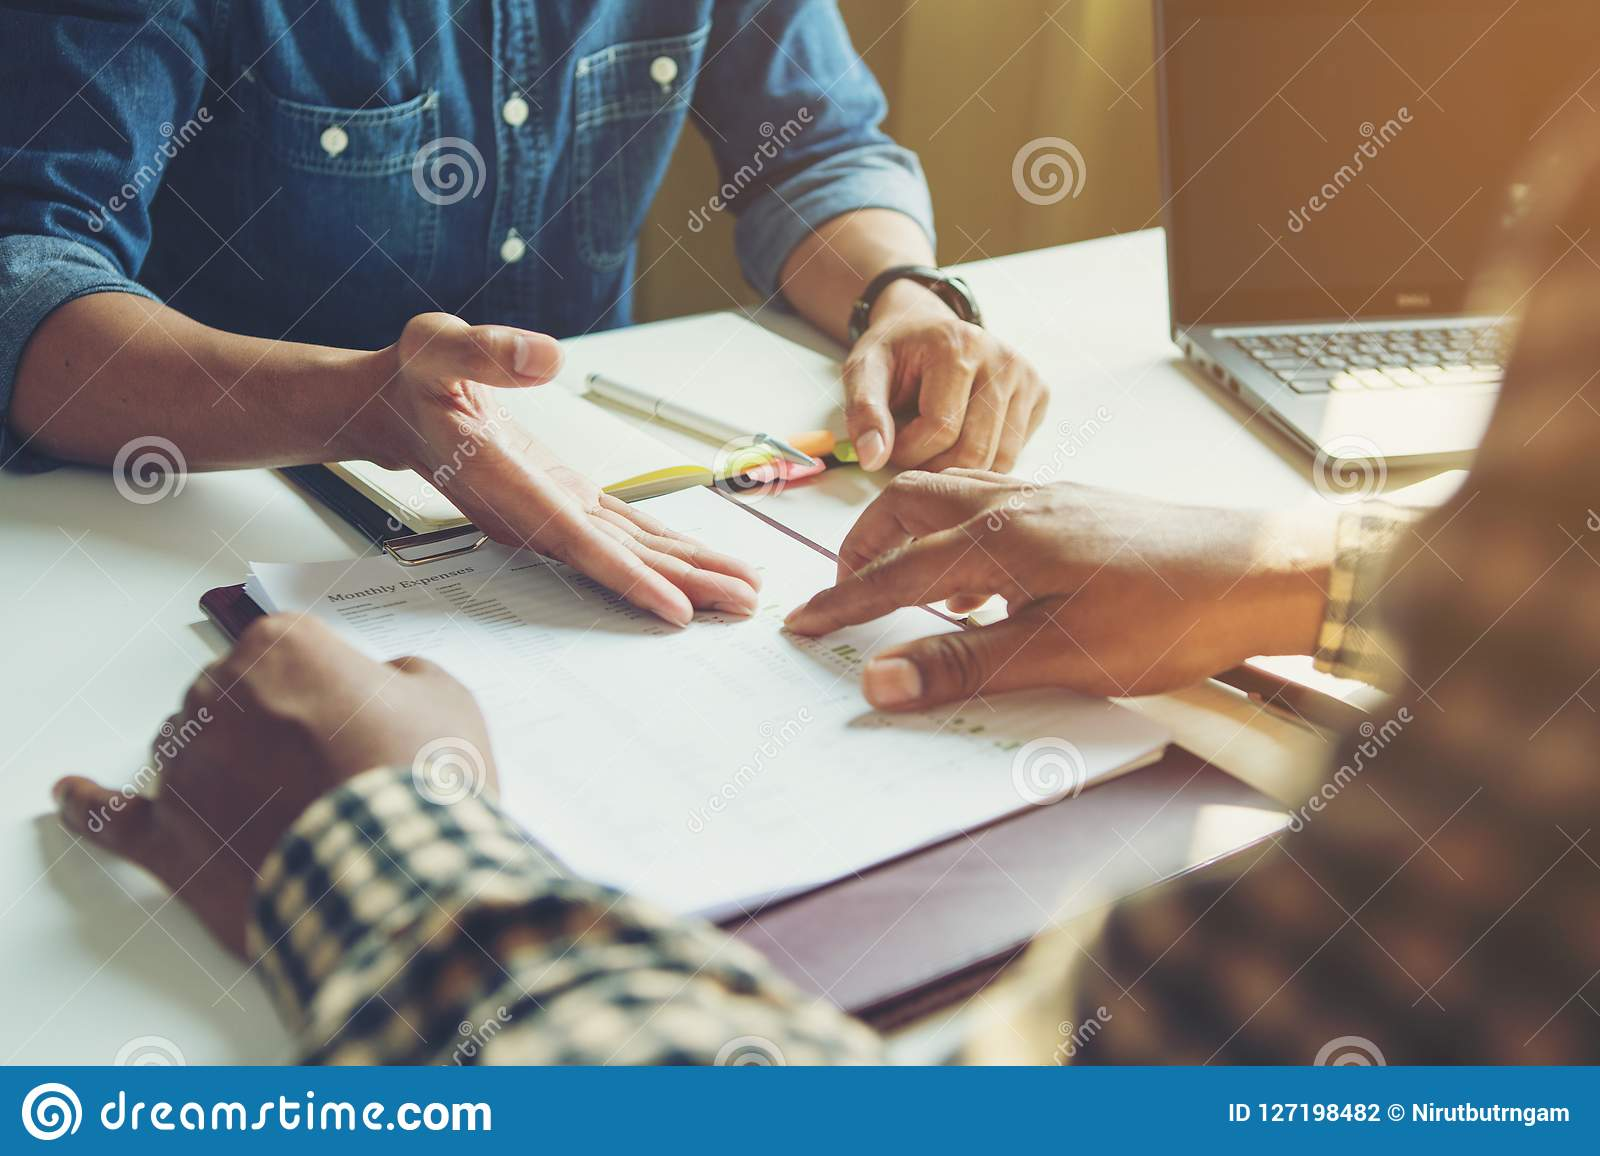 Meeting of business colleagues the company provides statistical